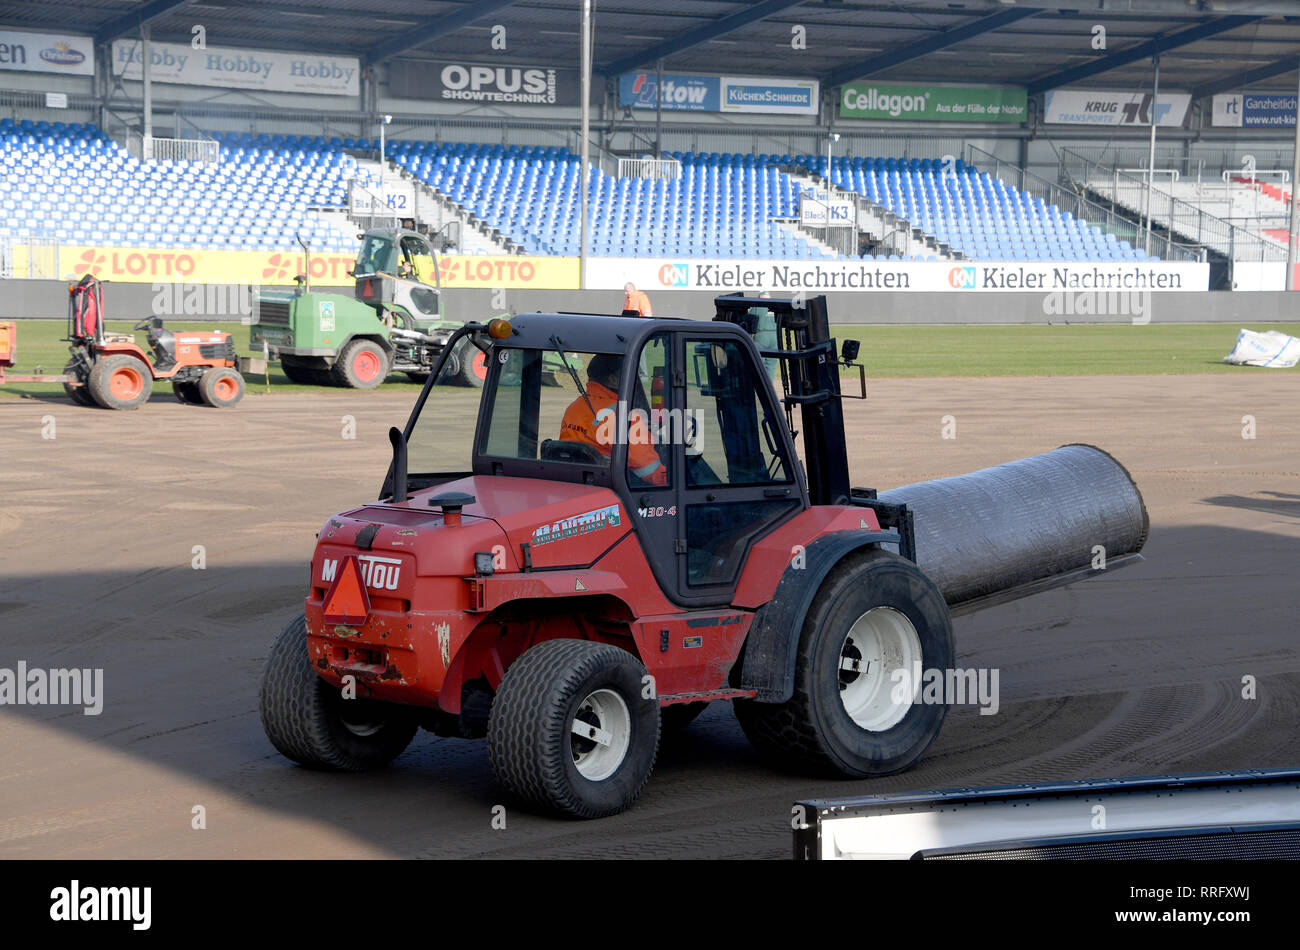 26 February 2019, Schleswig-Holstein, Kiel: Around 8000 square meters of new grass will be laid in the Holstein Stadium in Kiel. The 290 reels cost an almost six-figure sum. The last time the lawn was changed was about a year ago. Holstein Kiel plays here on 01.03.2019 against Union Berlin Photo: Carsten Rehder/dpa - IMPORTANT NOTE: In accordance with the requirements of the DFL Deutsche Fußball Liga or the DFB Deutscher Fußball-Bund, it is prohibited to use or have used photographs taken in the stadium and/or the match in the form of sequence images and/or video-like photo sequences. Stock Photo